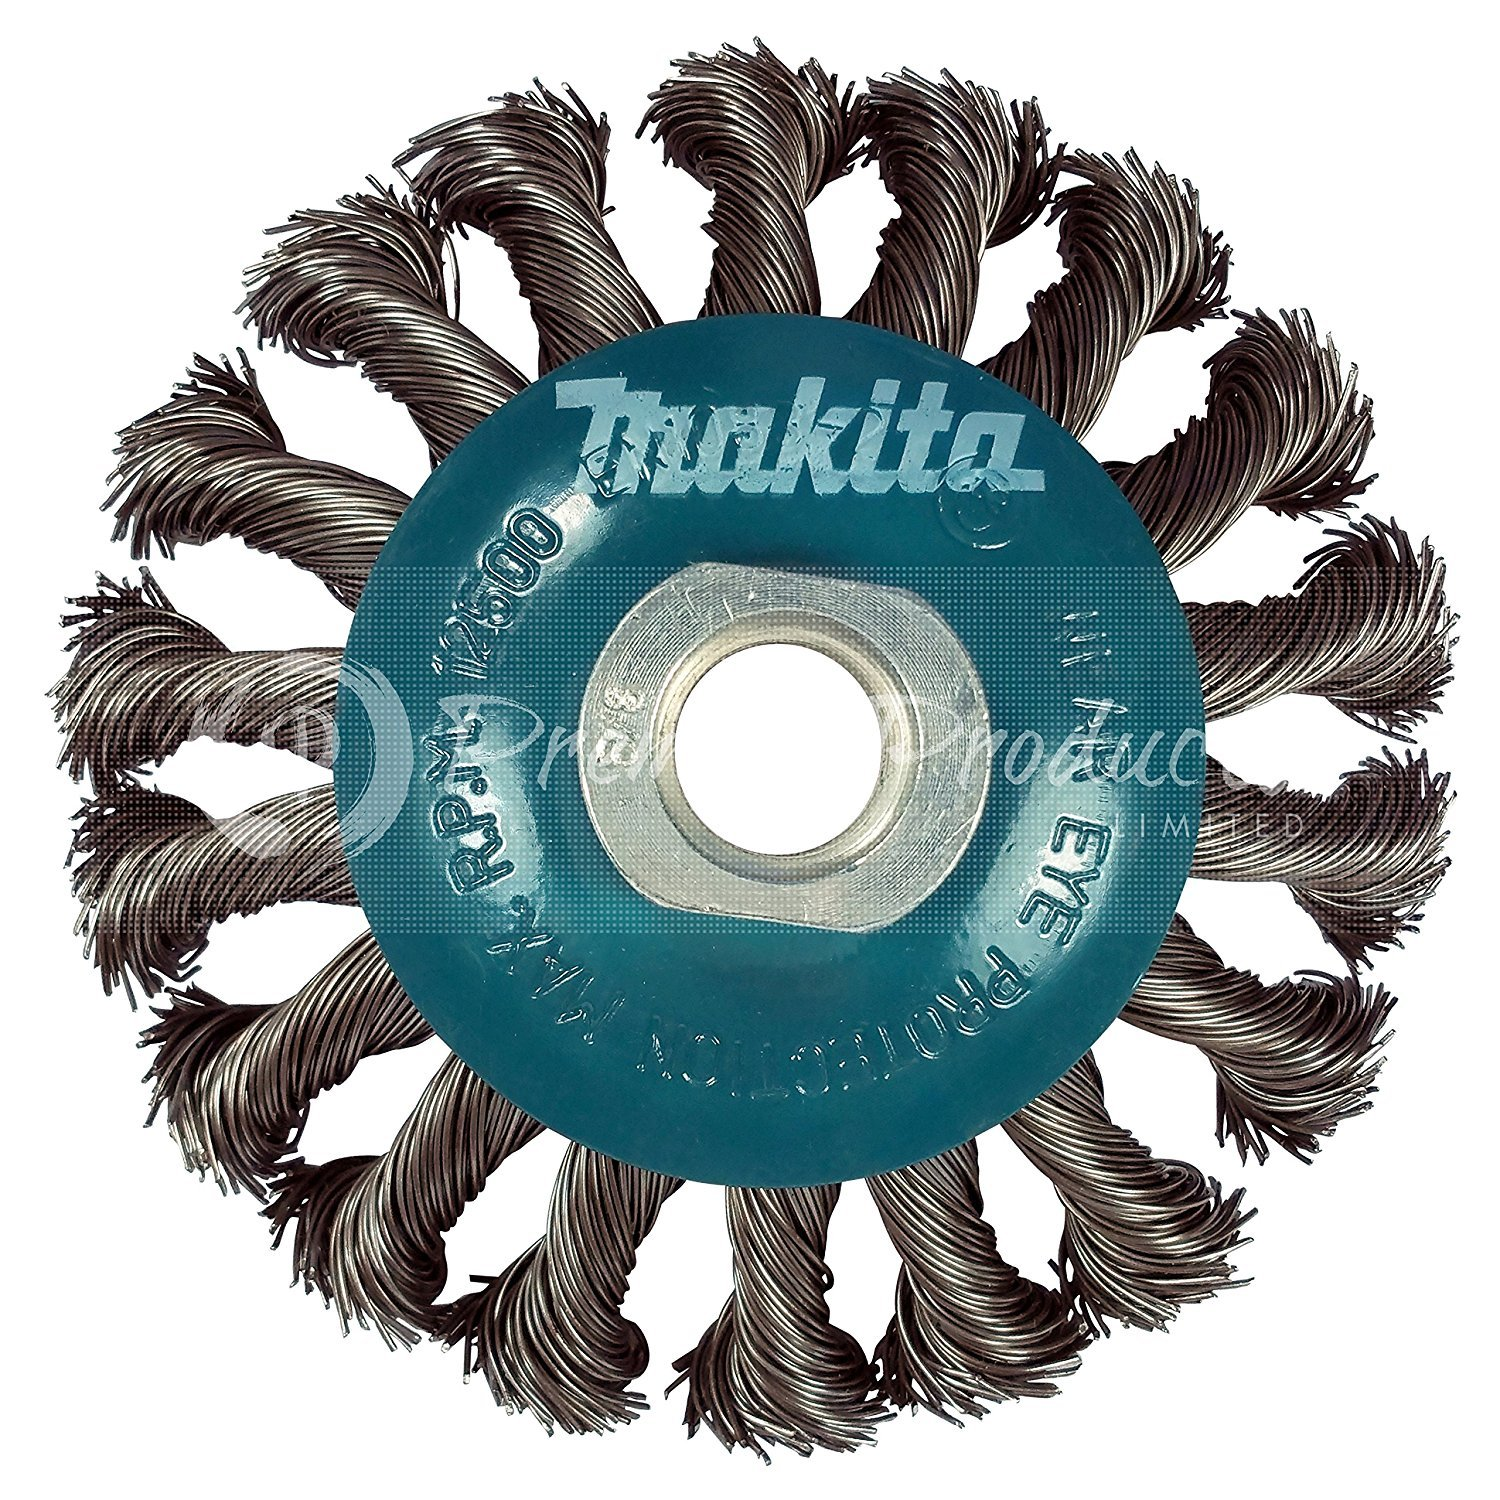 Makita 1 Piece - 4 1 2 Knotted Twist Wire Wheel Brush For Grinders - Heavy-Duty Conditioning For Metal - 4 1/2'' x 5/8-Inch | 11 UNC